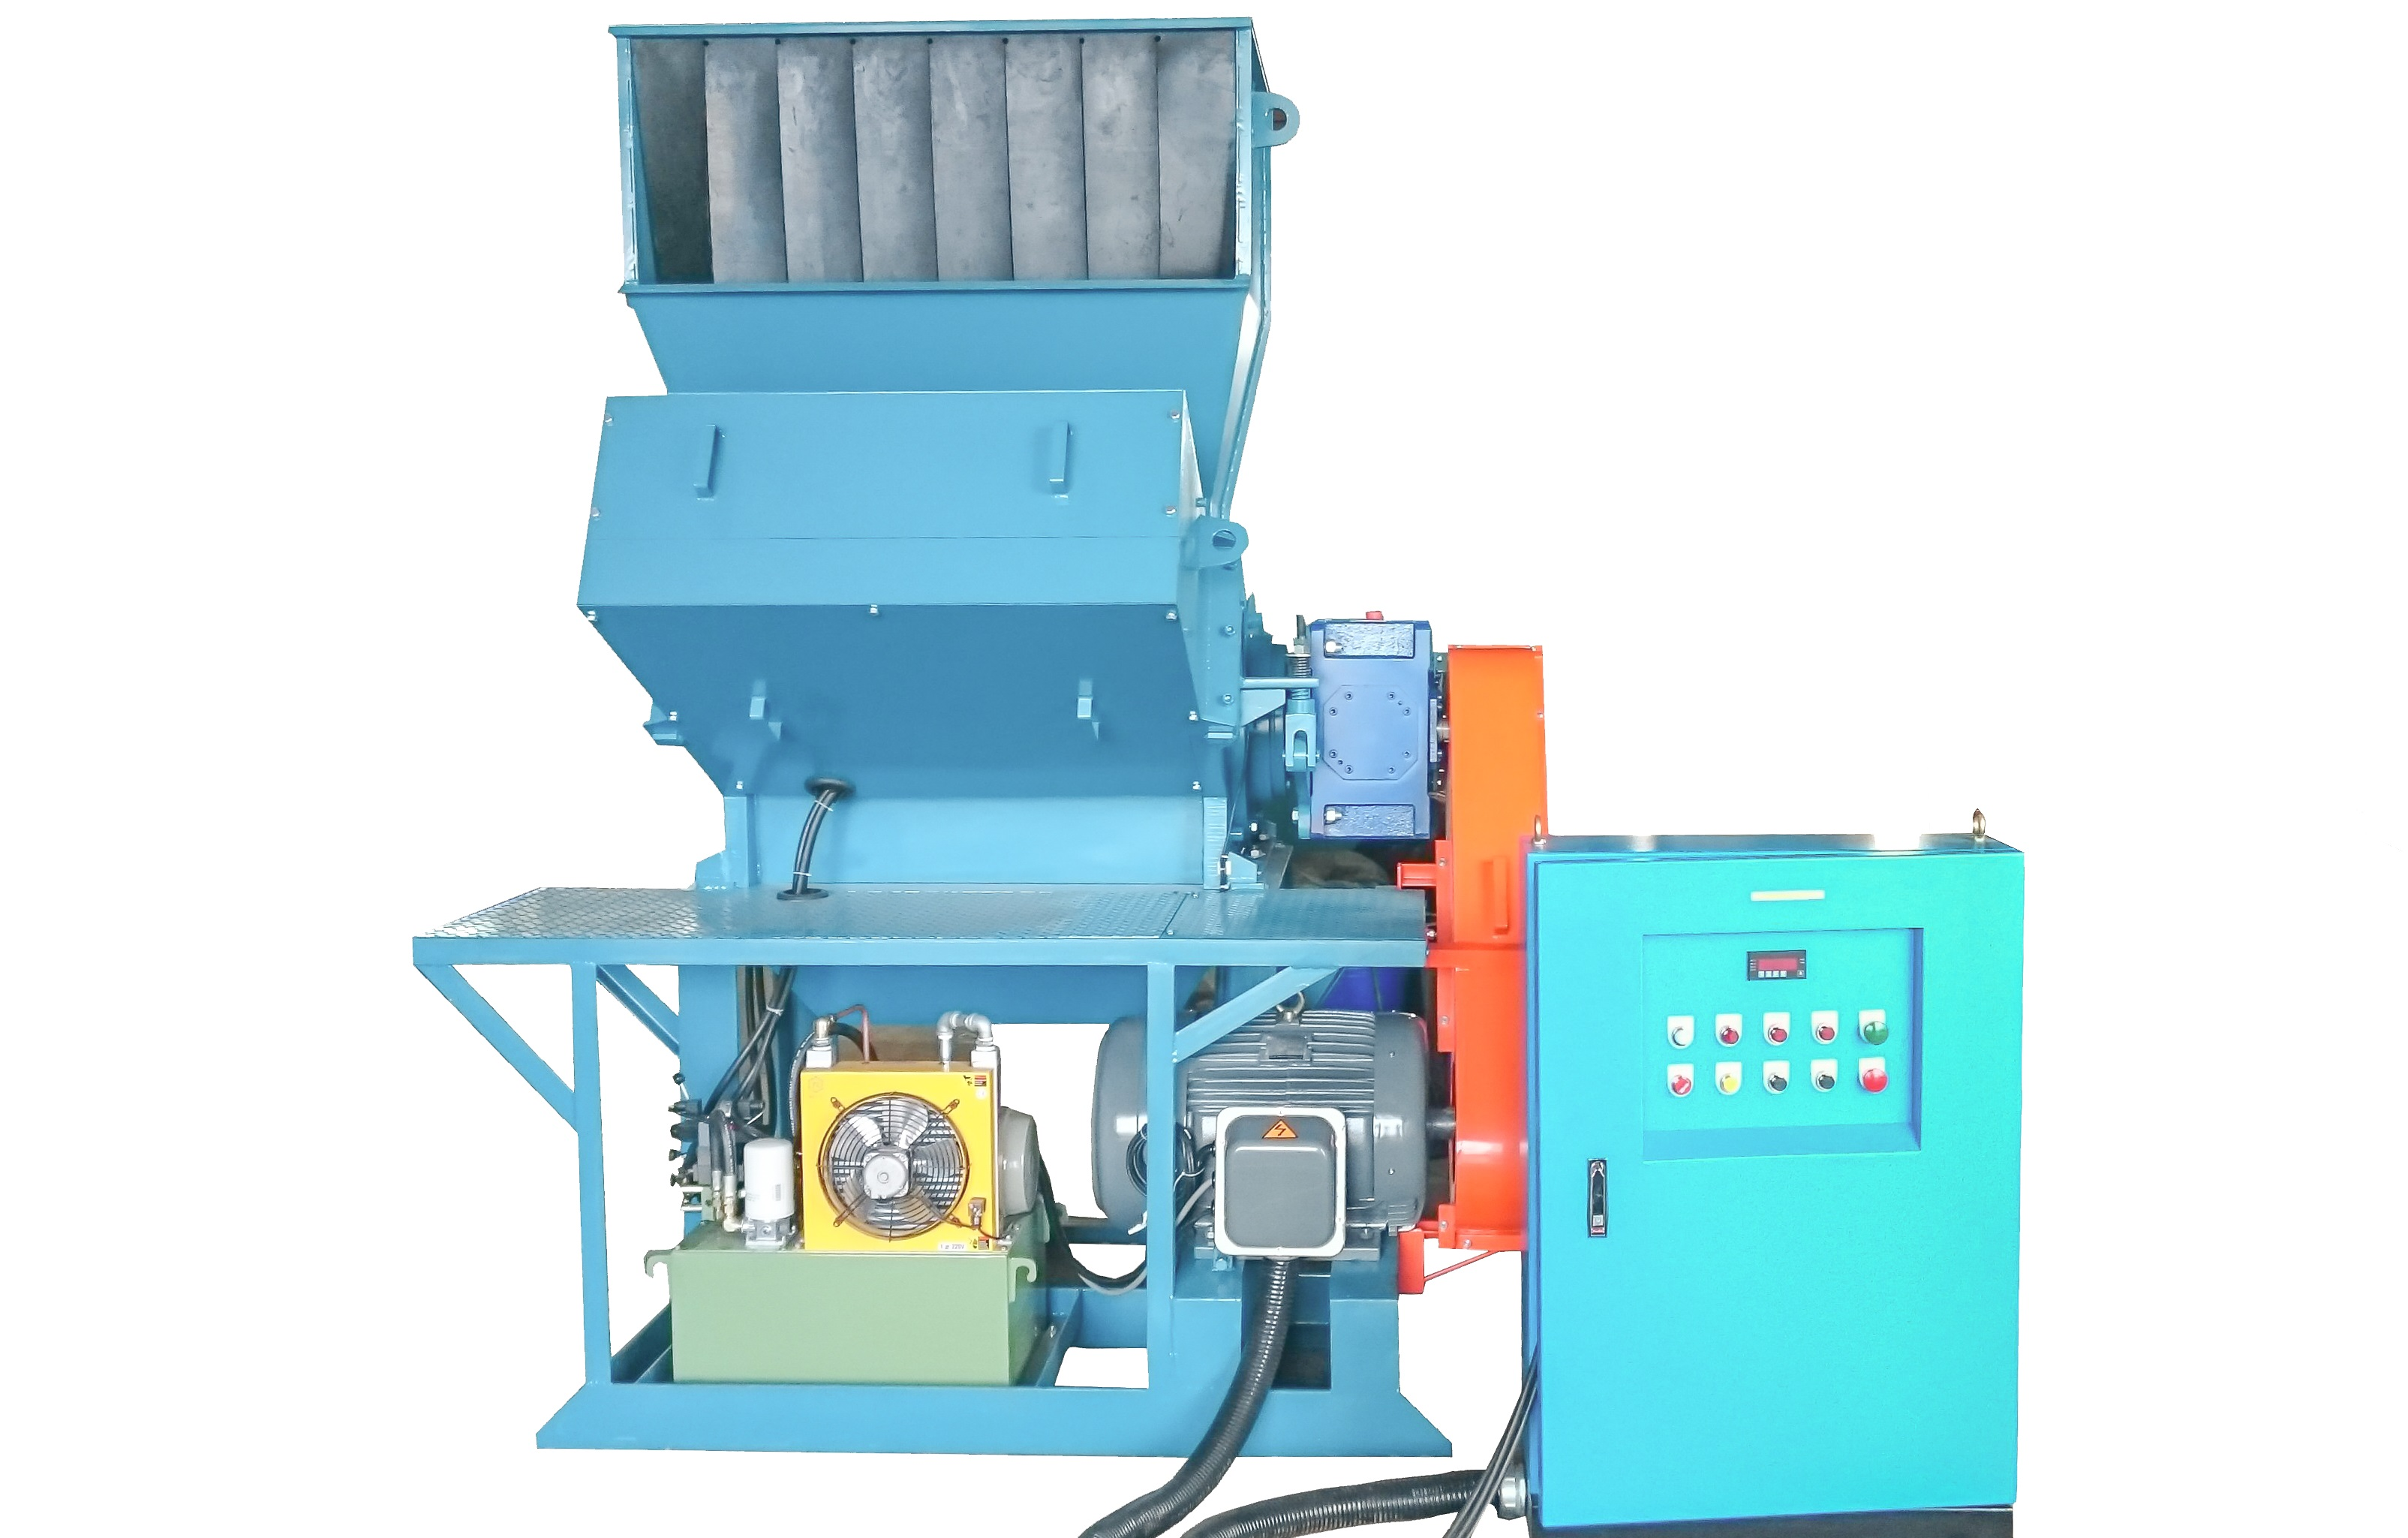 KS series Single-shaft shredder